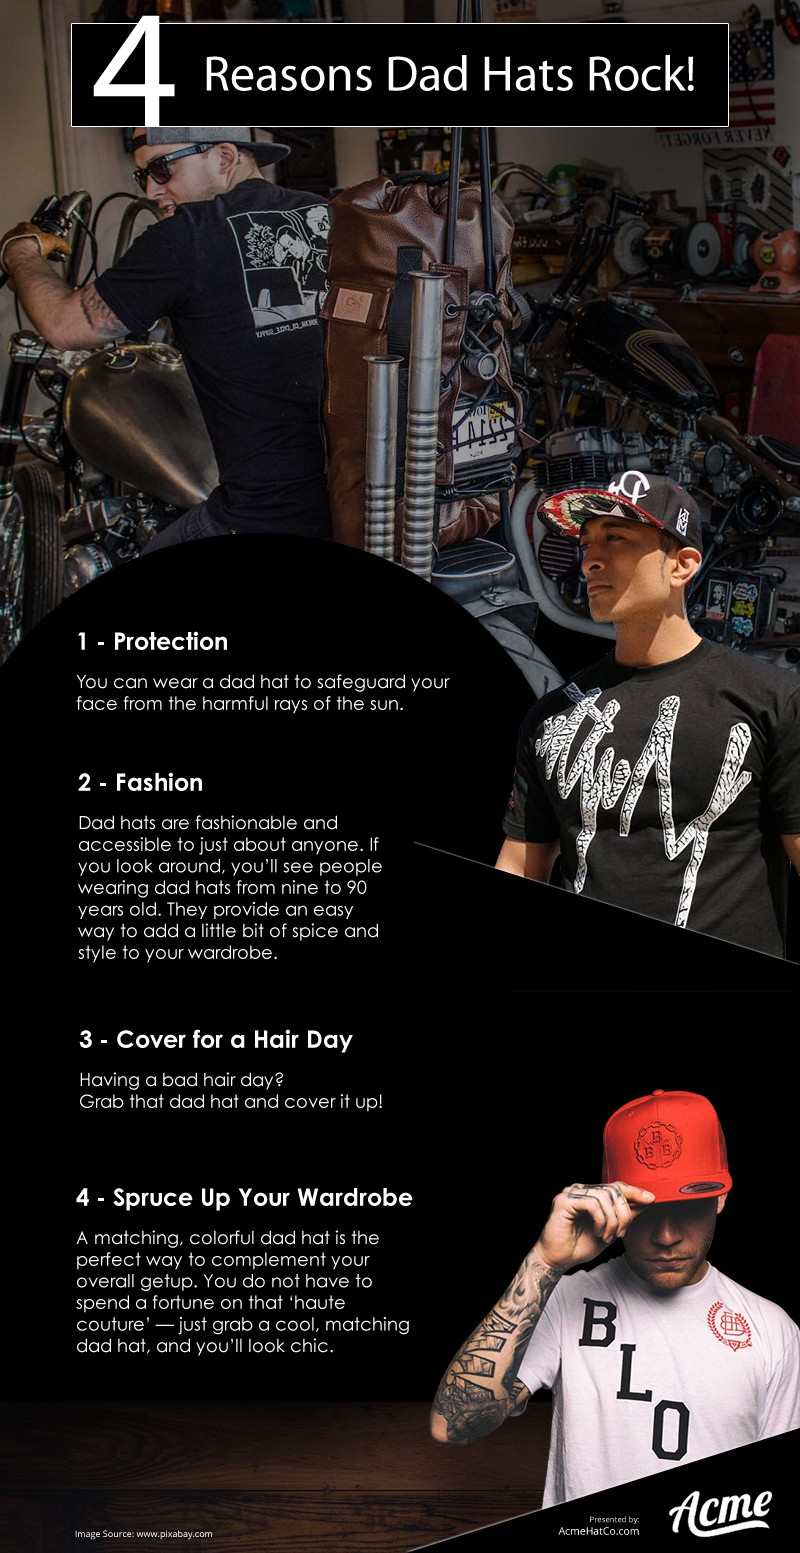 4 Reasons Dad Hats Rock Infographic